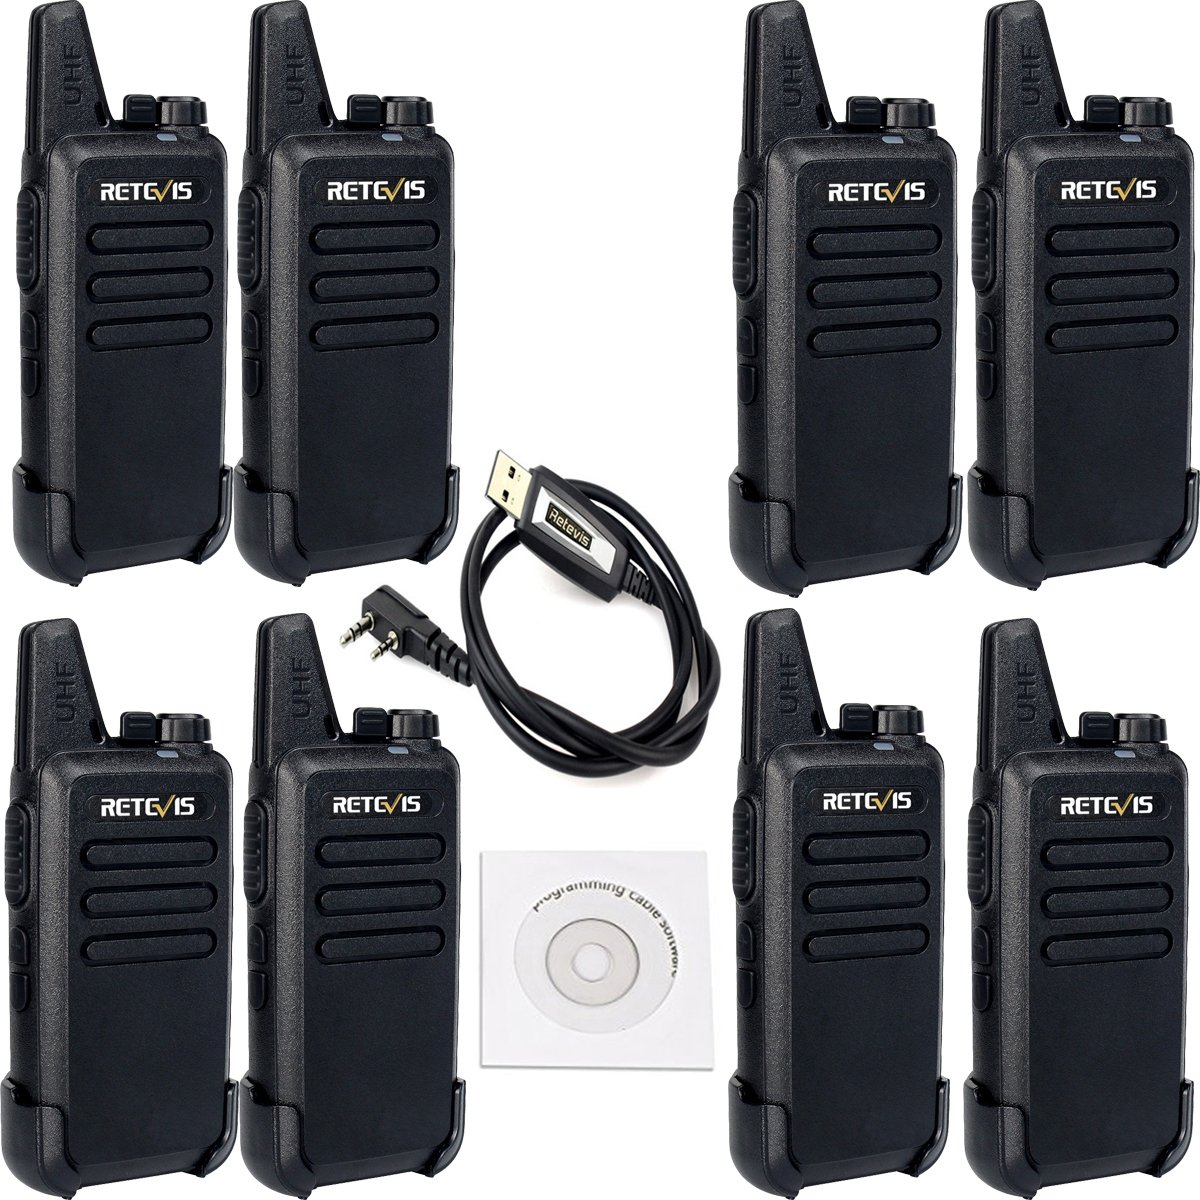 Retevis RT22 Two Way Radio Rechargeable UHF 400-480MHz 16 CH CTCSS/DCS VOX Walkie Talkies(8 Pack) and Programming Cable(1 Pack) by Retevis